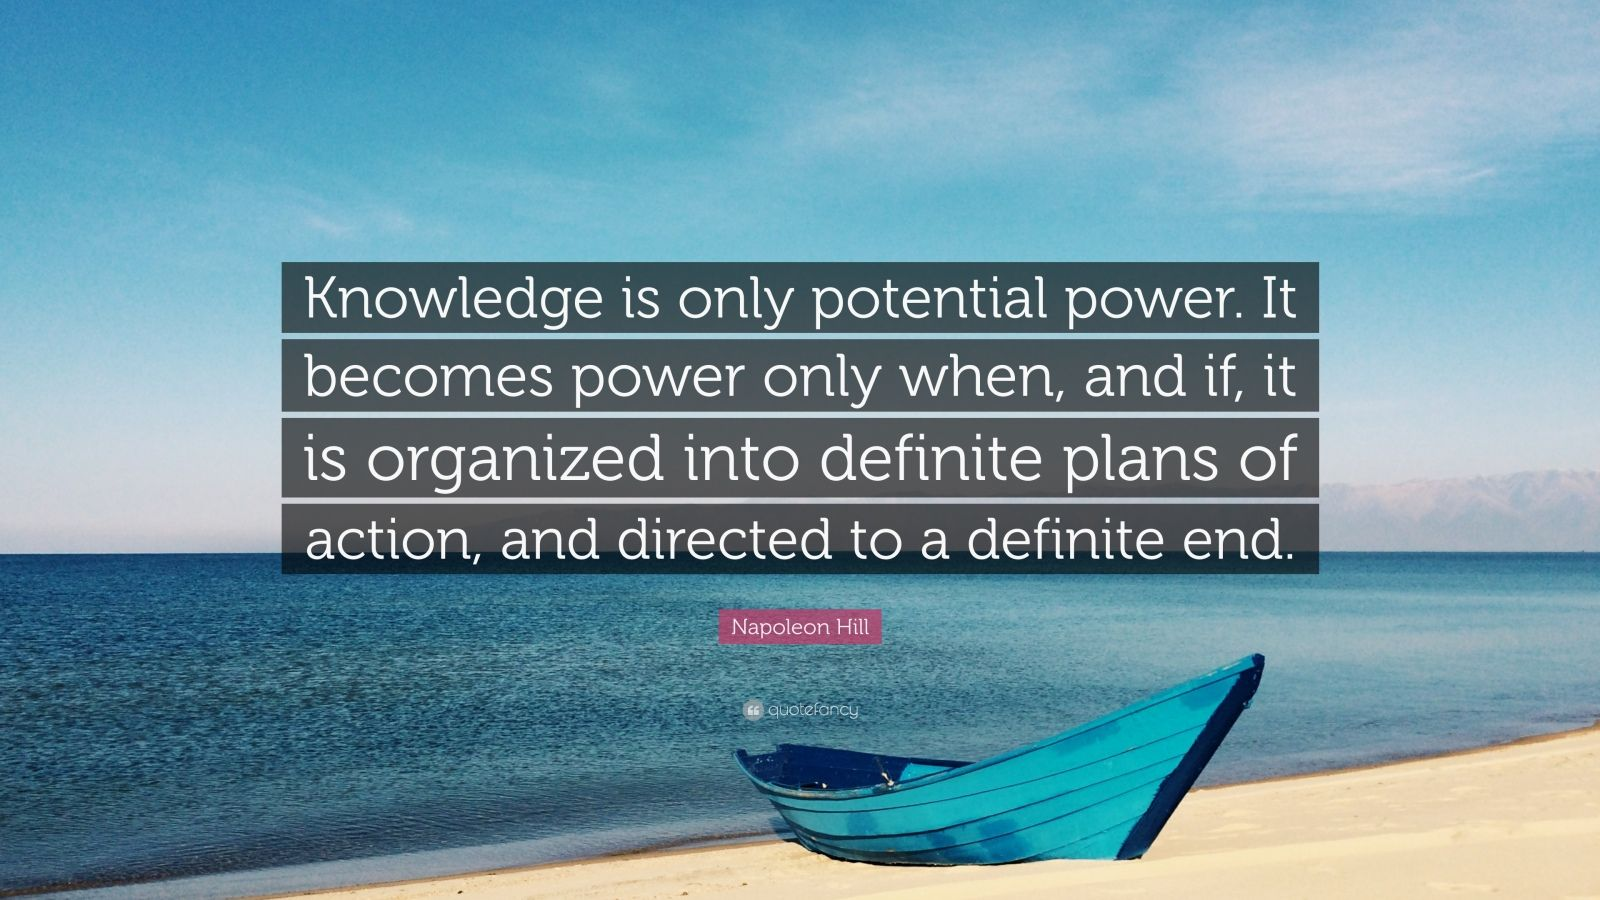 knowledge is only potential power